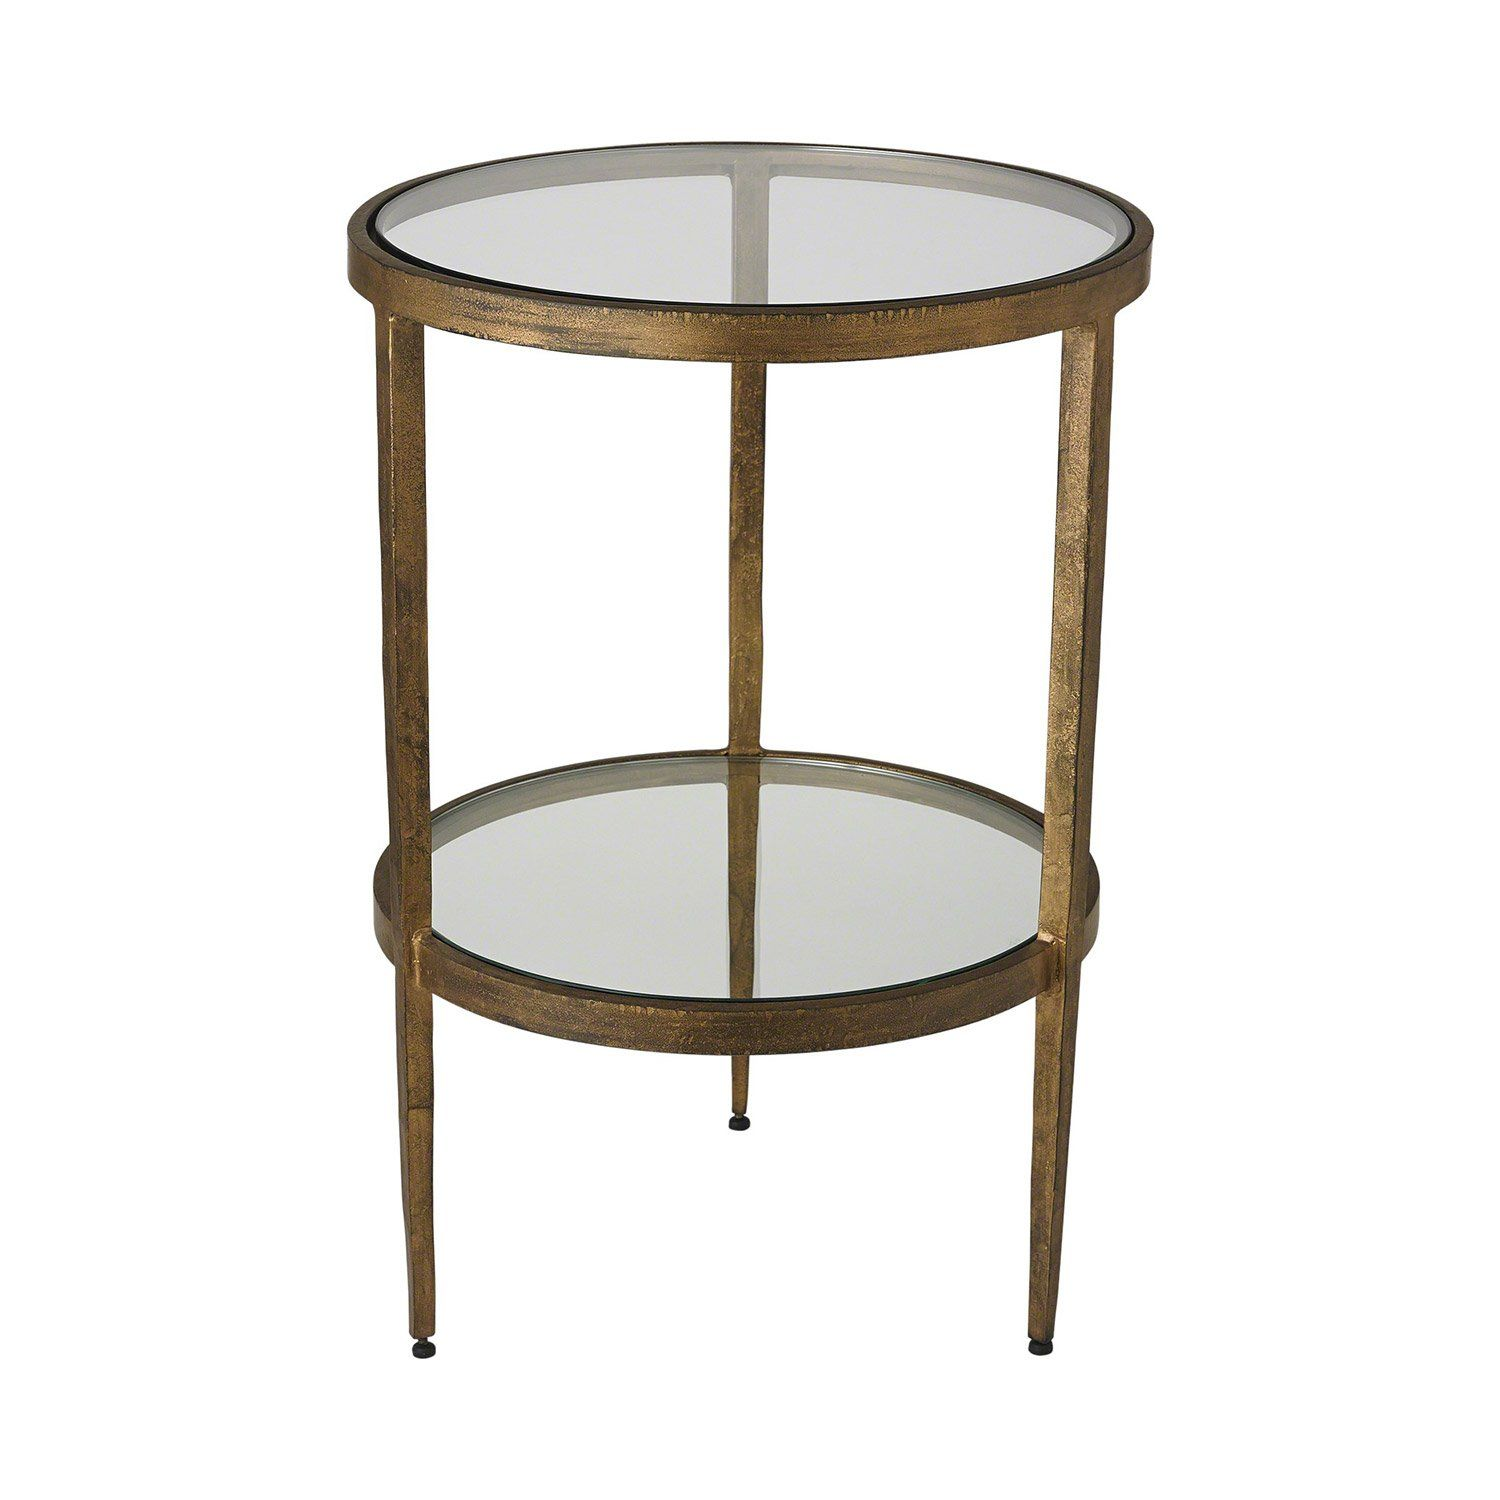 Studio A Laforge Two Tiered Side Table Side Table Modern End Tables End Tables